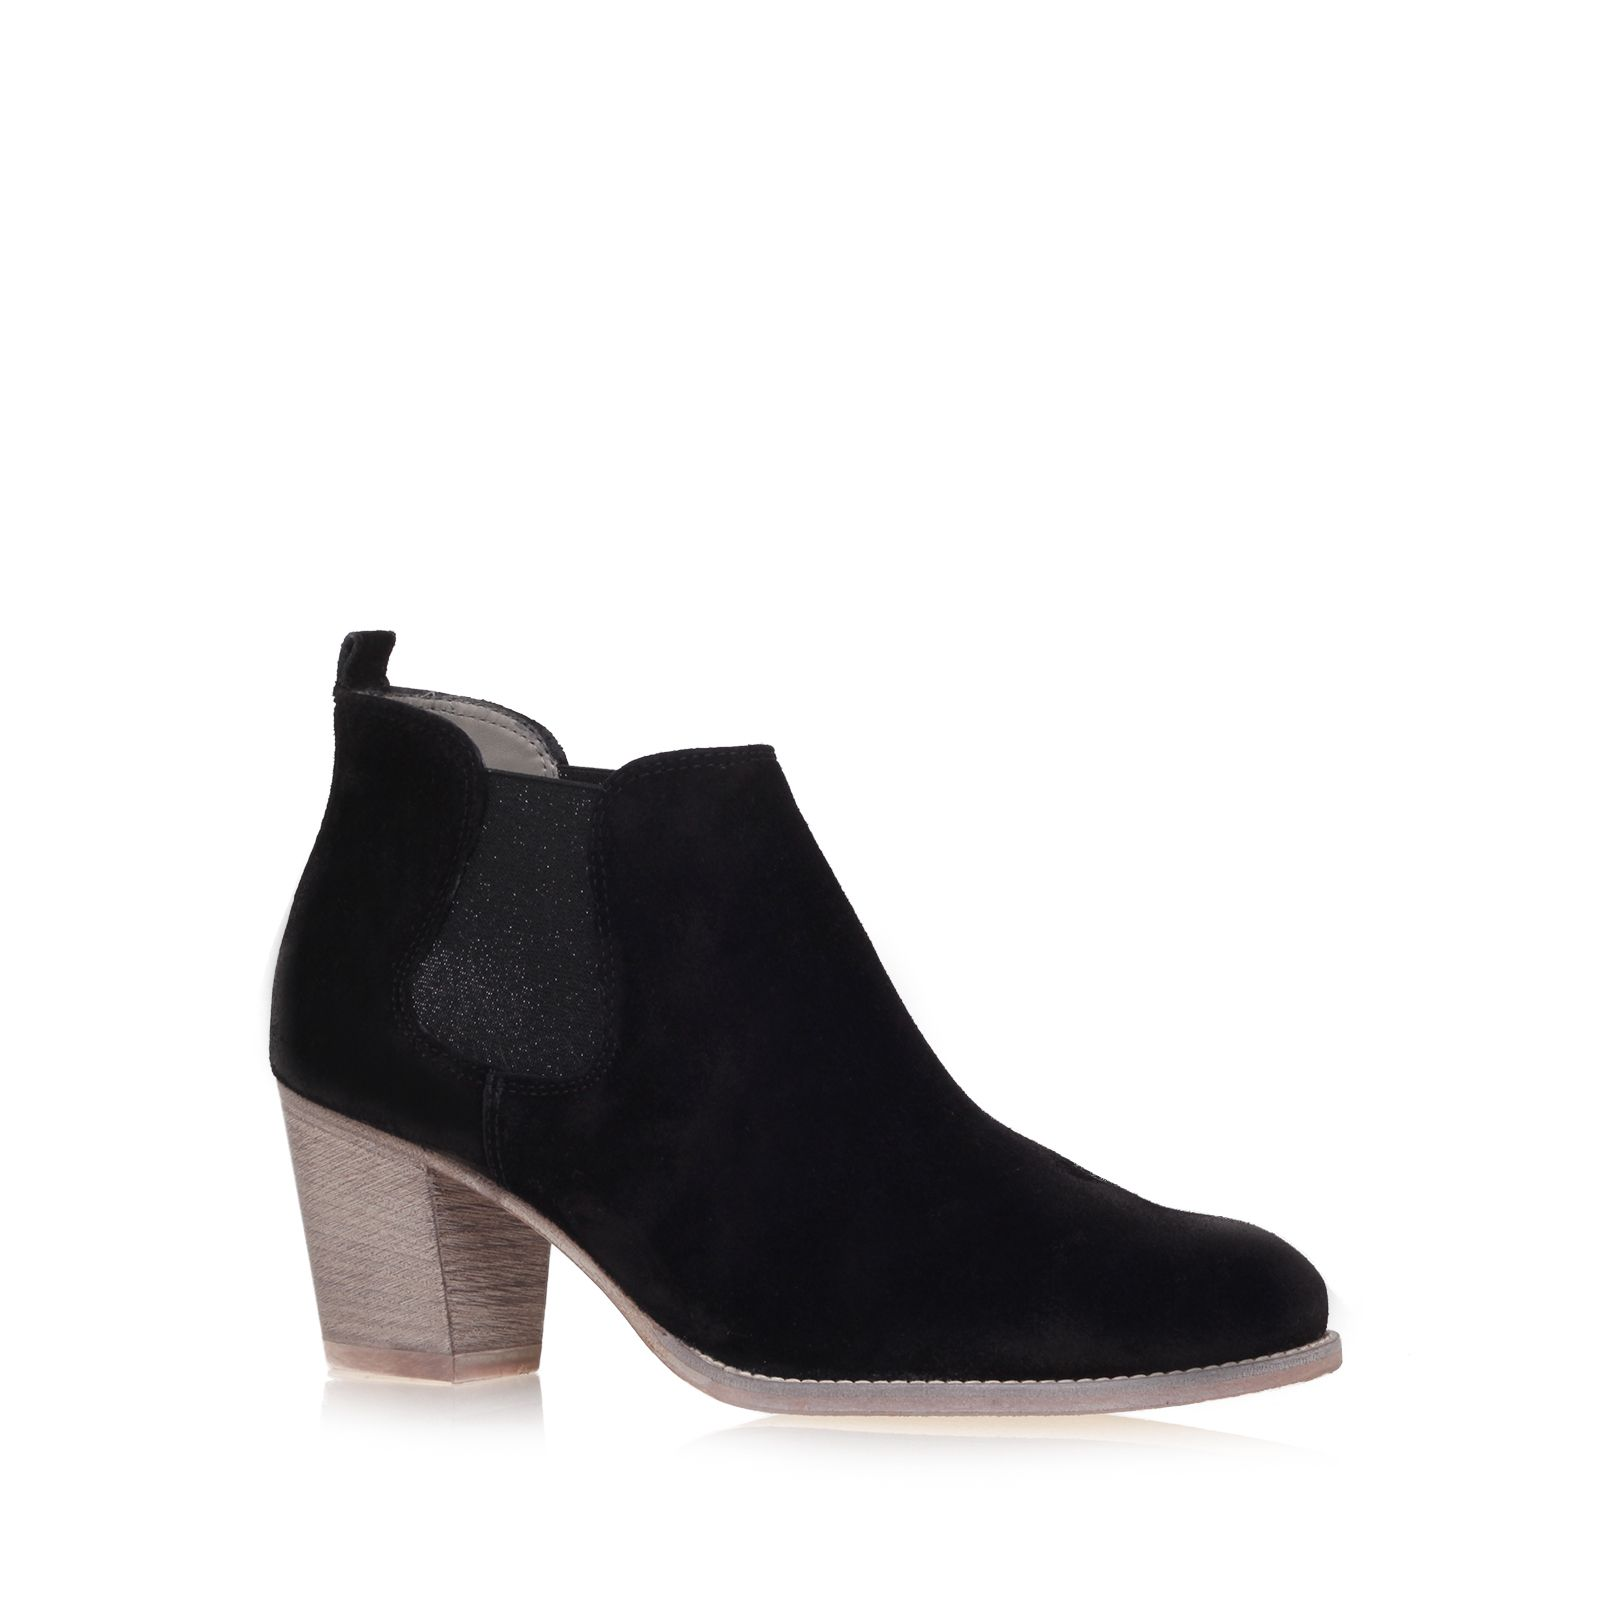 Chloe low heeled boots